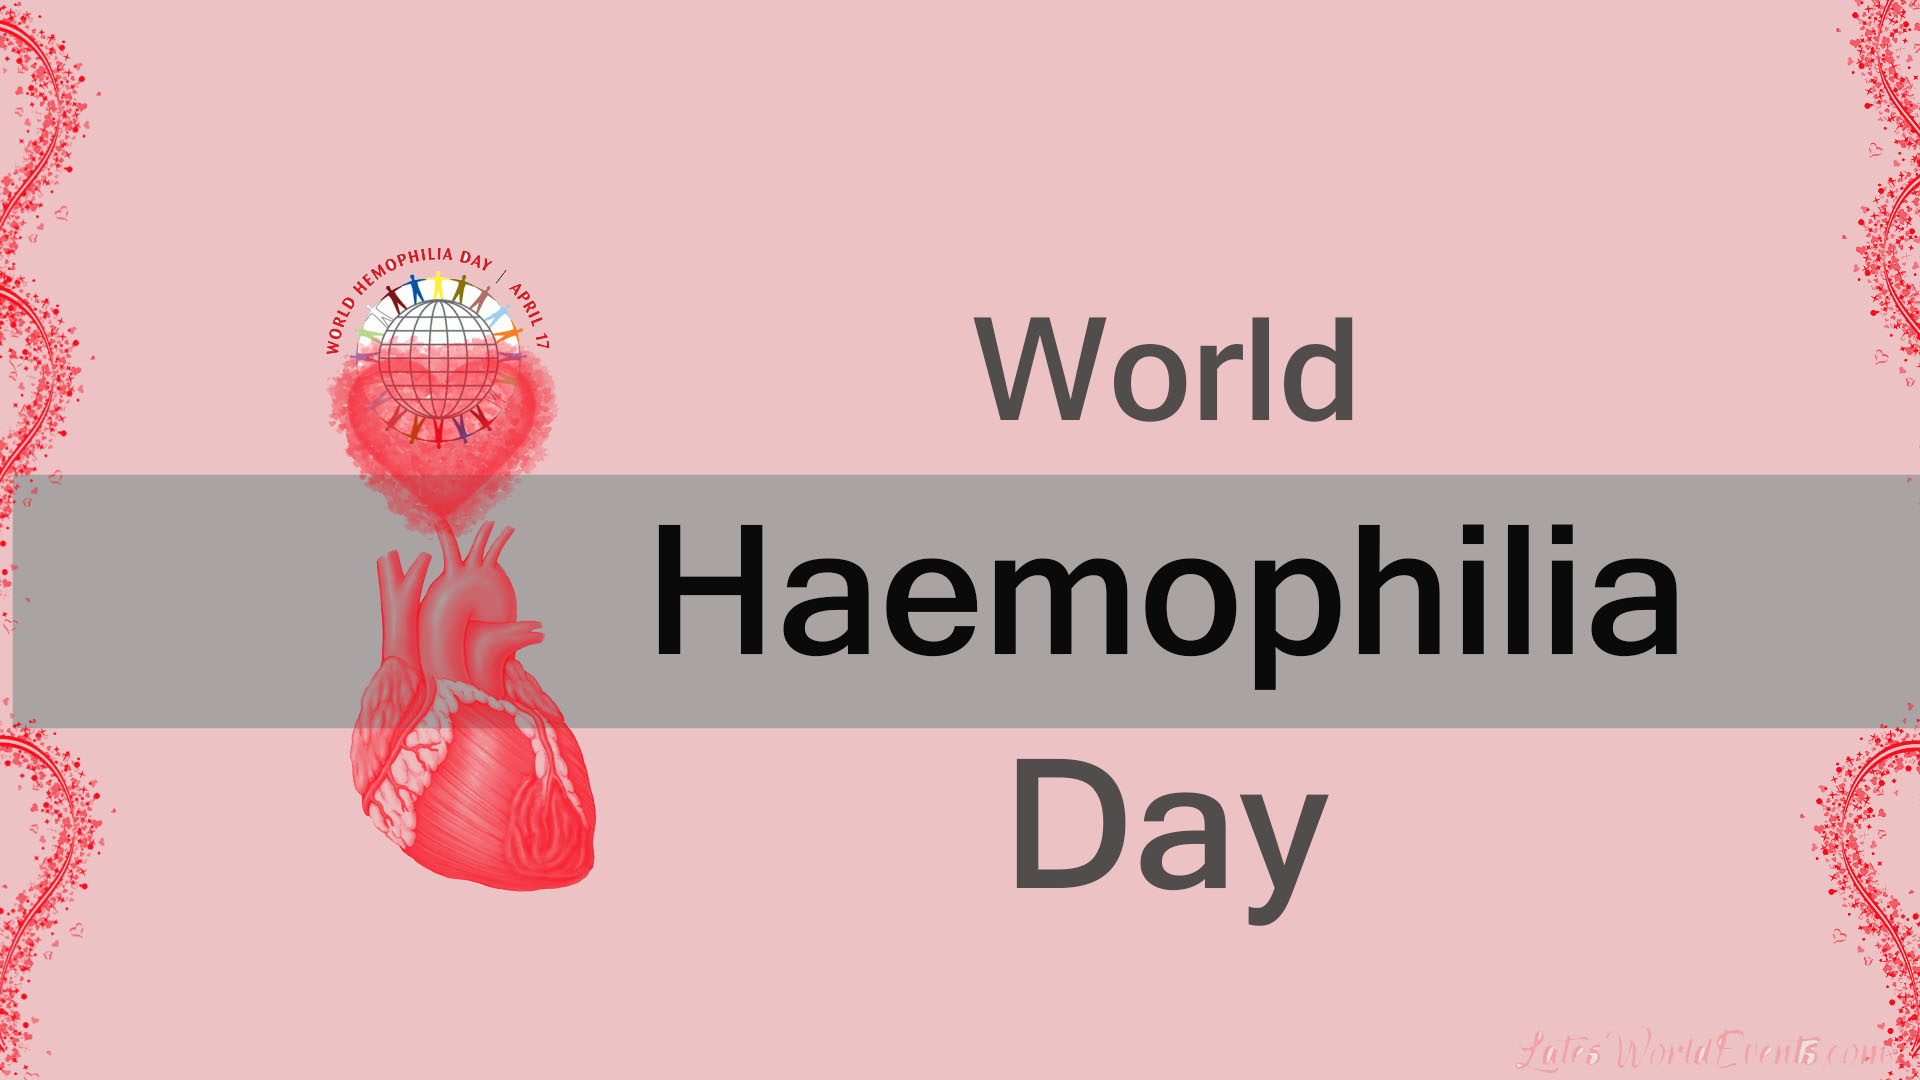 2020-world-haemophilia-day-wallpapers-images